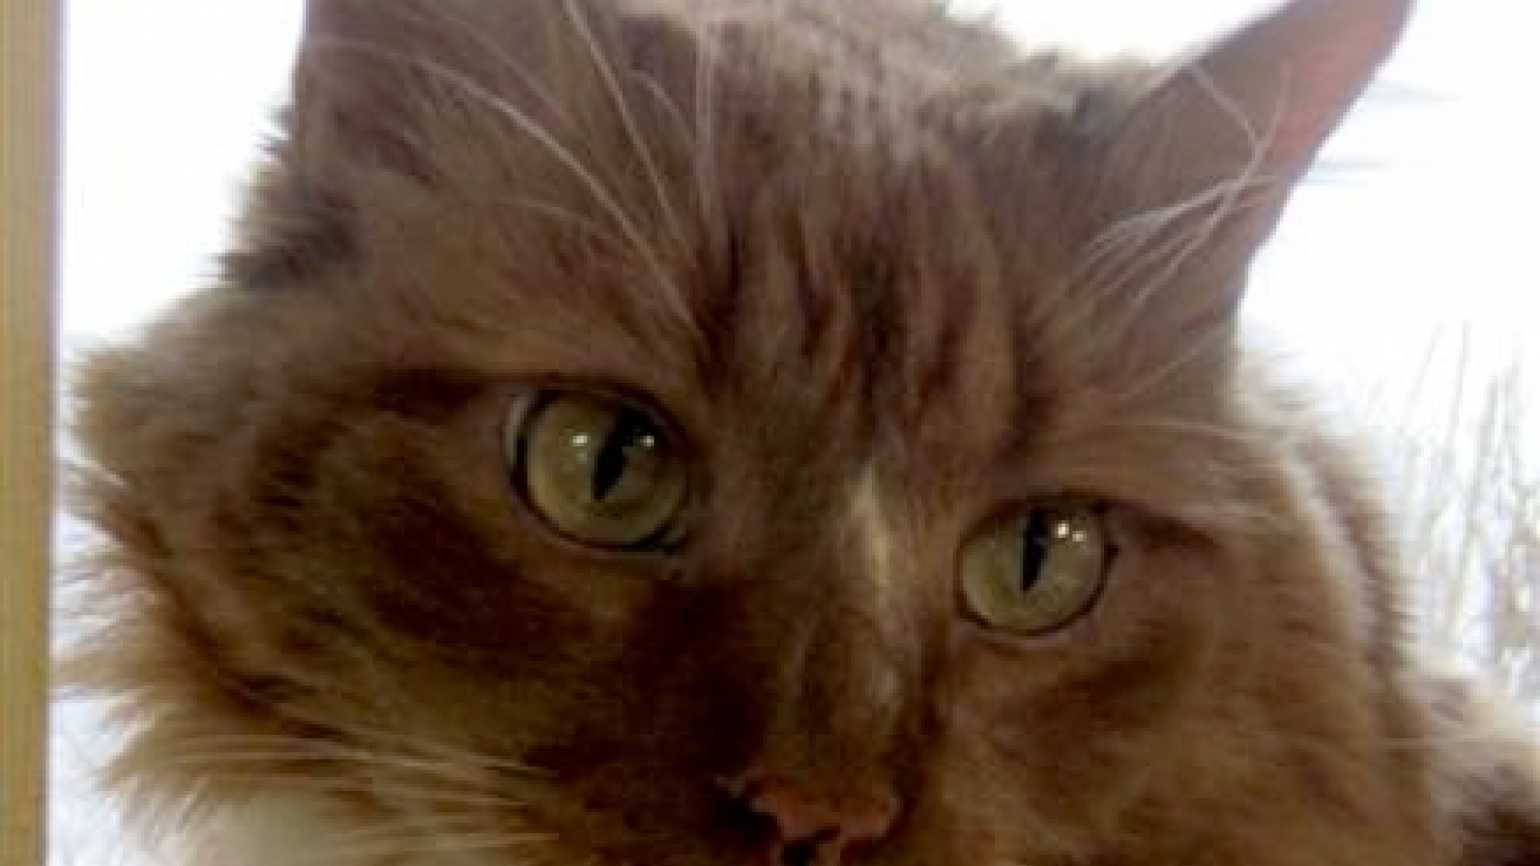 Pudding, an adopted cat, saved her new owner in a true miracle